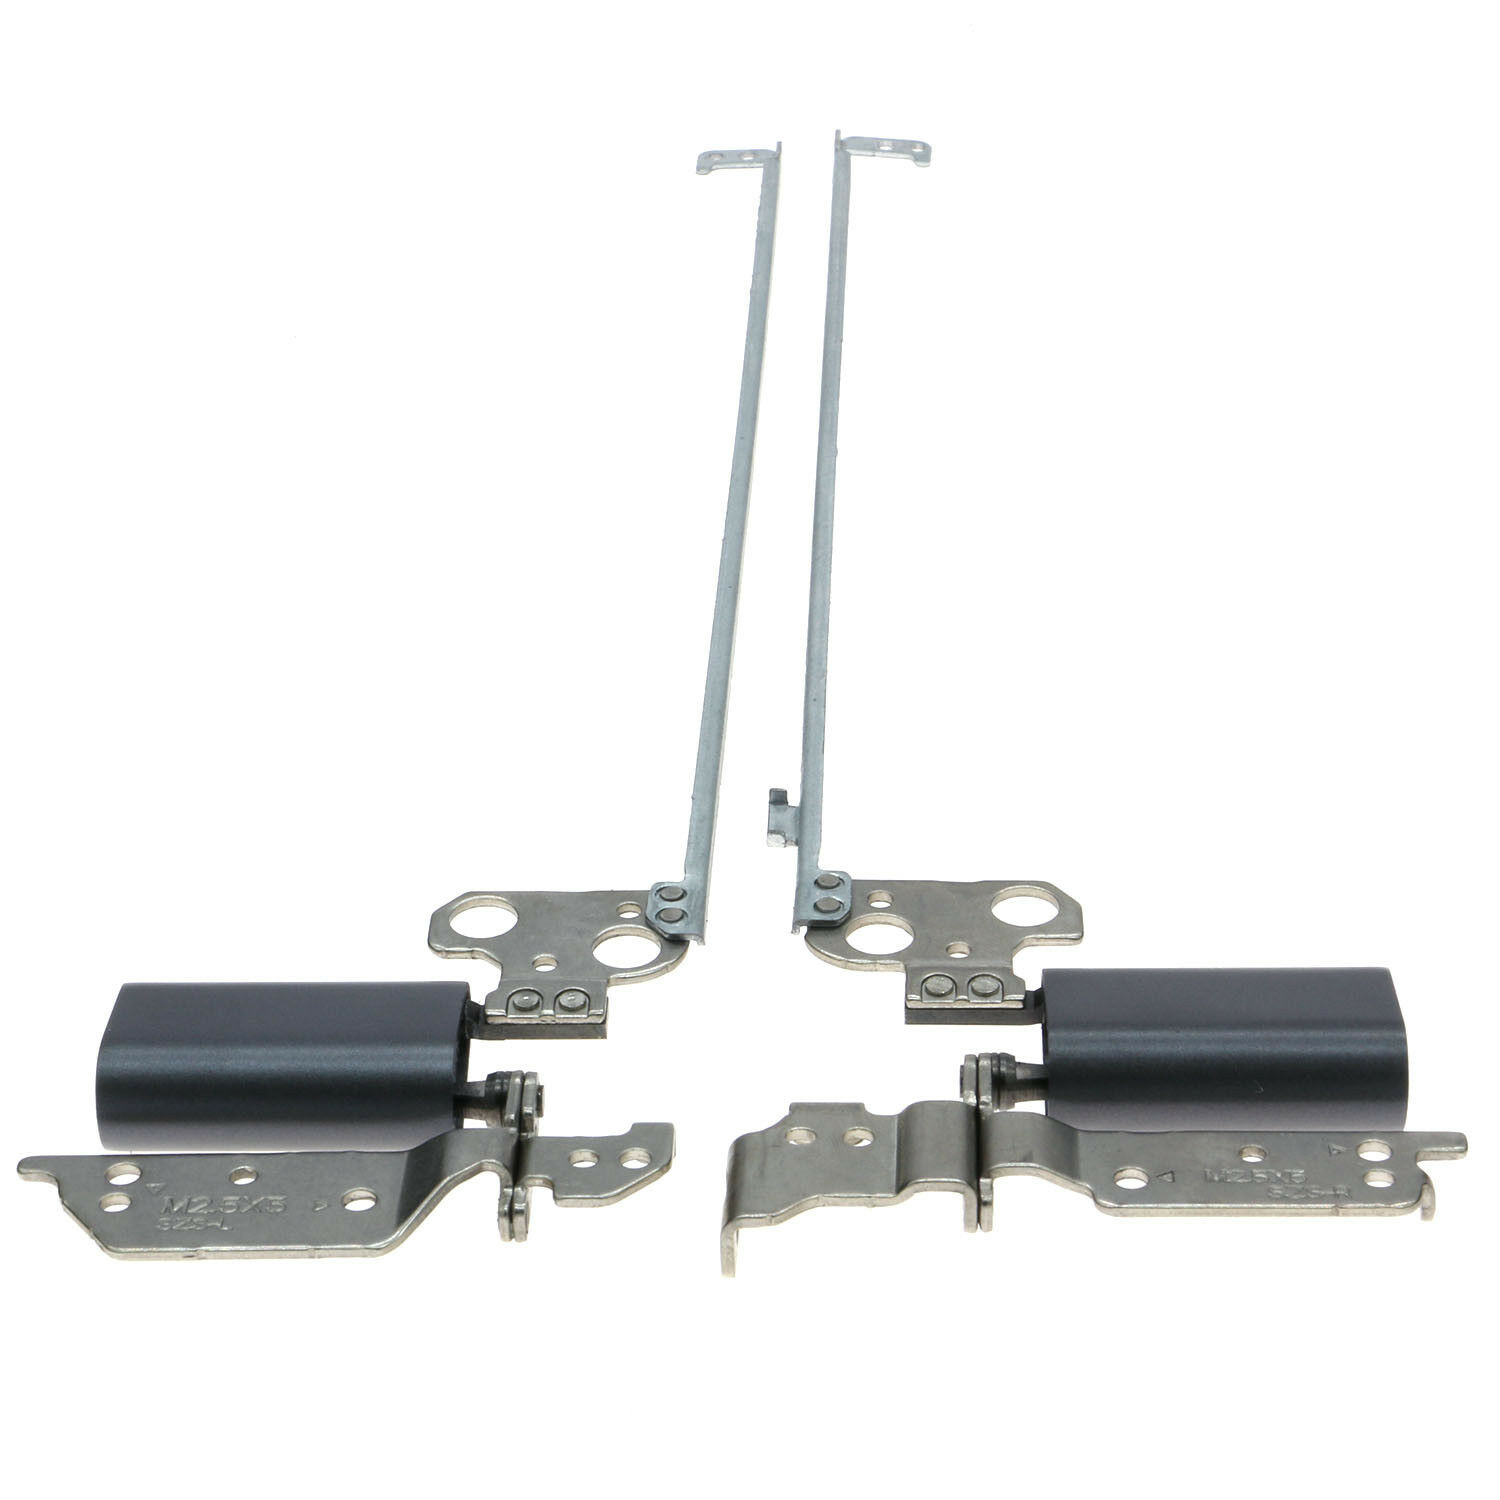 For Dell Inspiron 13MF 7368 7378 P69G I7368 I7378 LCD Screen Hinge L+R Set GT